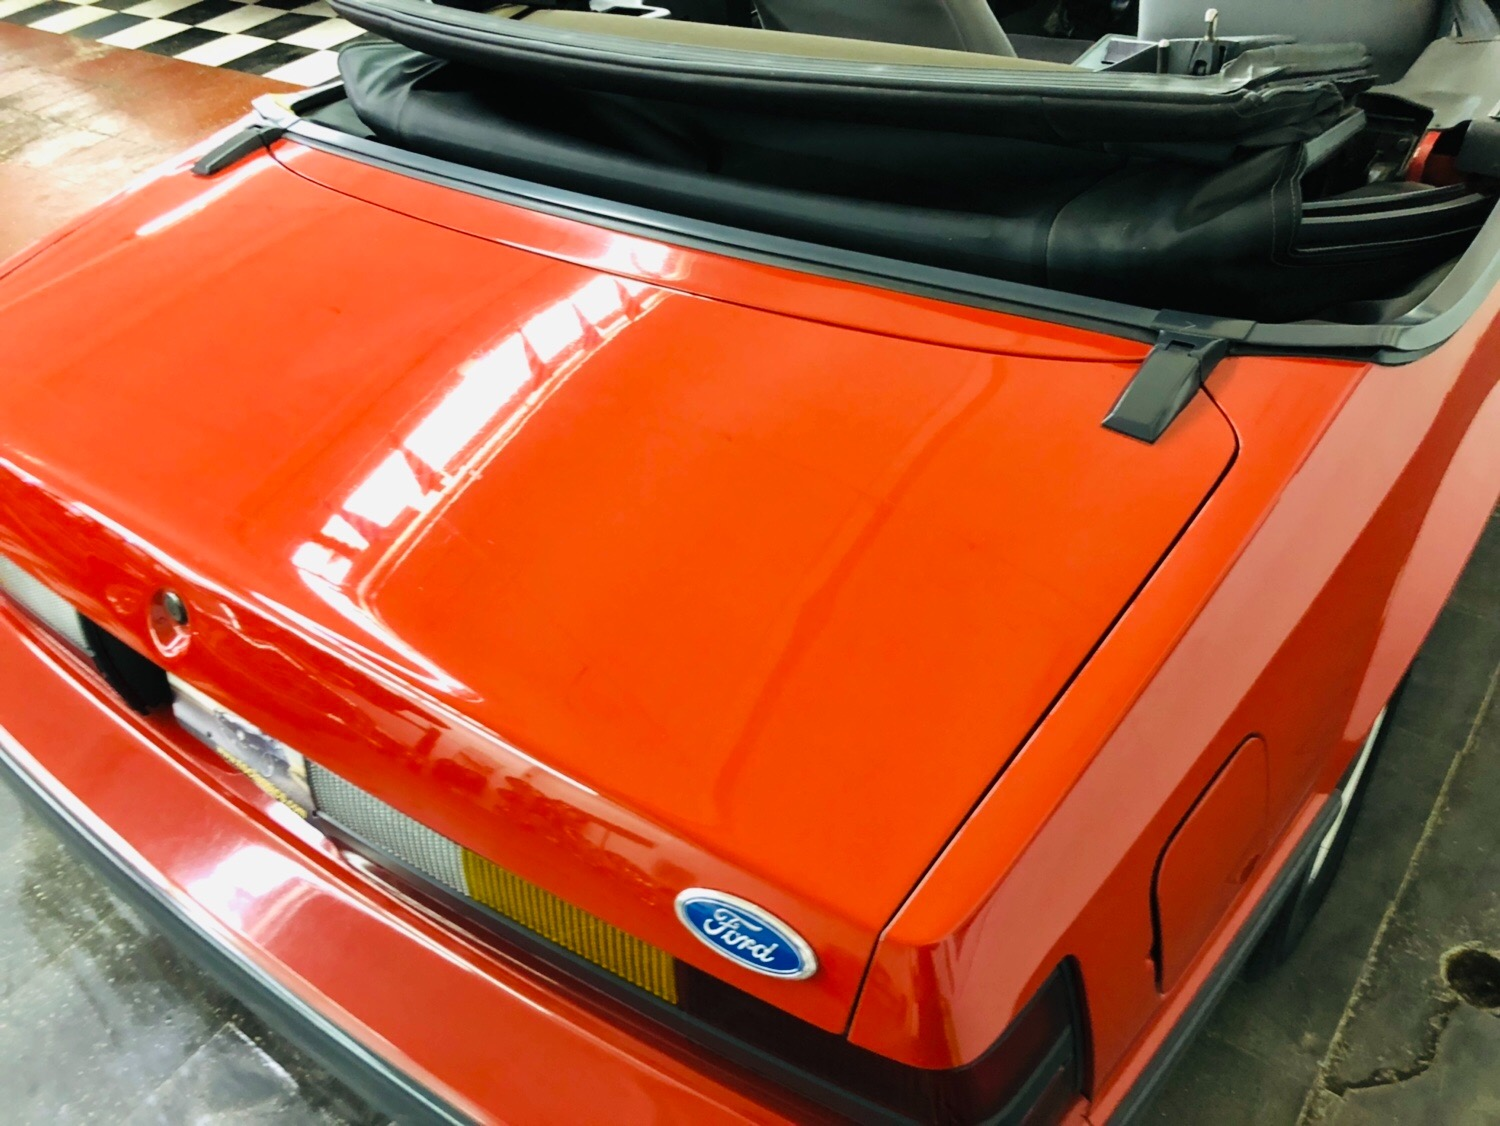 Used 1985 Ford Mustang -CONVERTIBLE GT - 5 SPEED - 43K ORIGINAL MILES - SEE VIDEO | Mundelein, IL